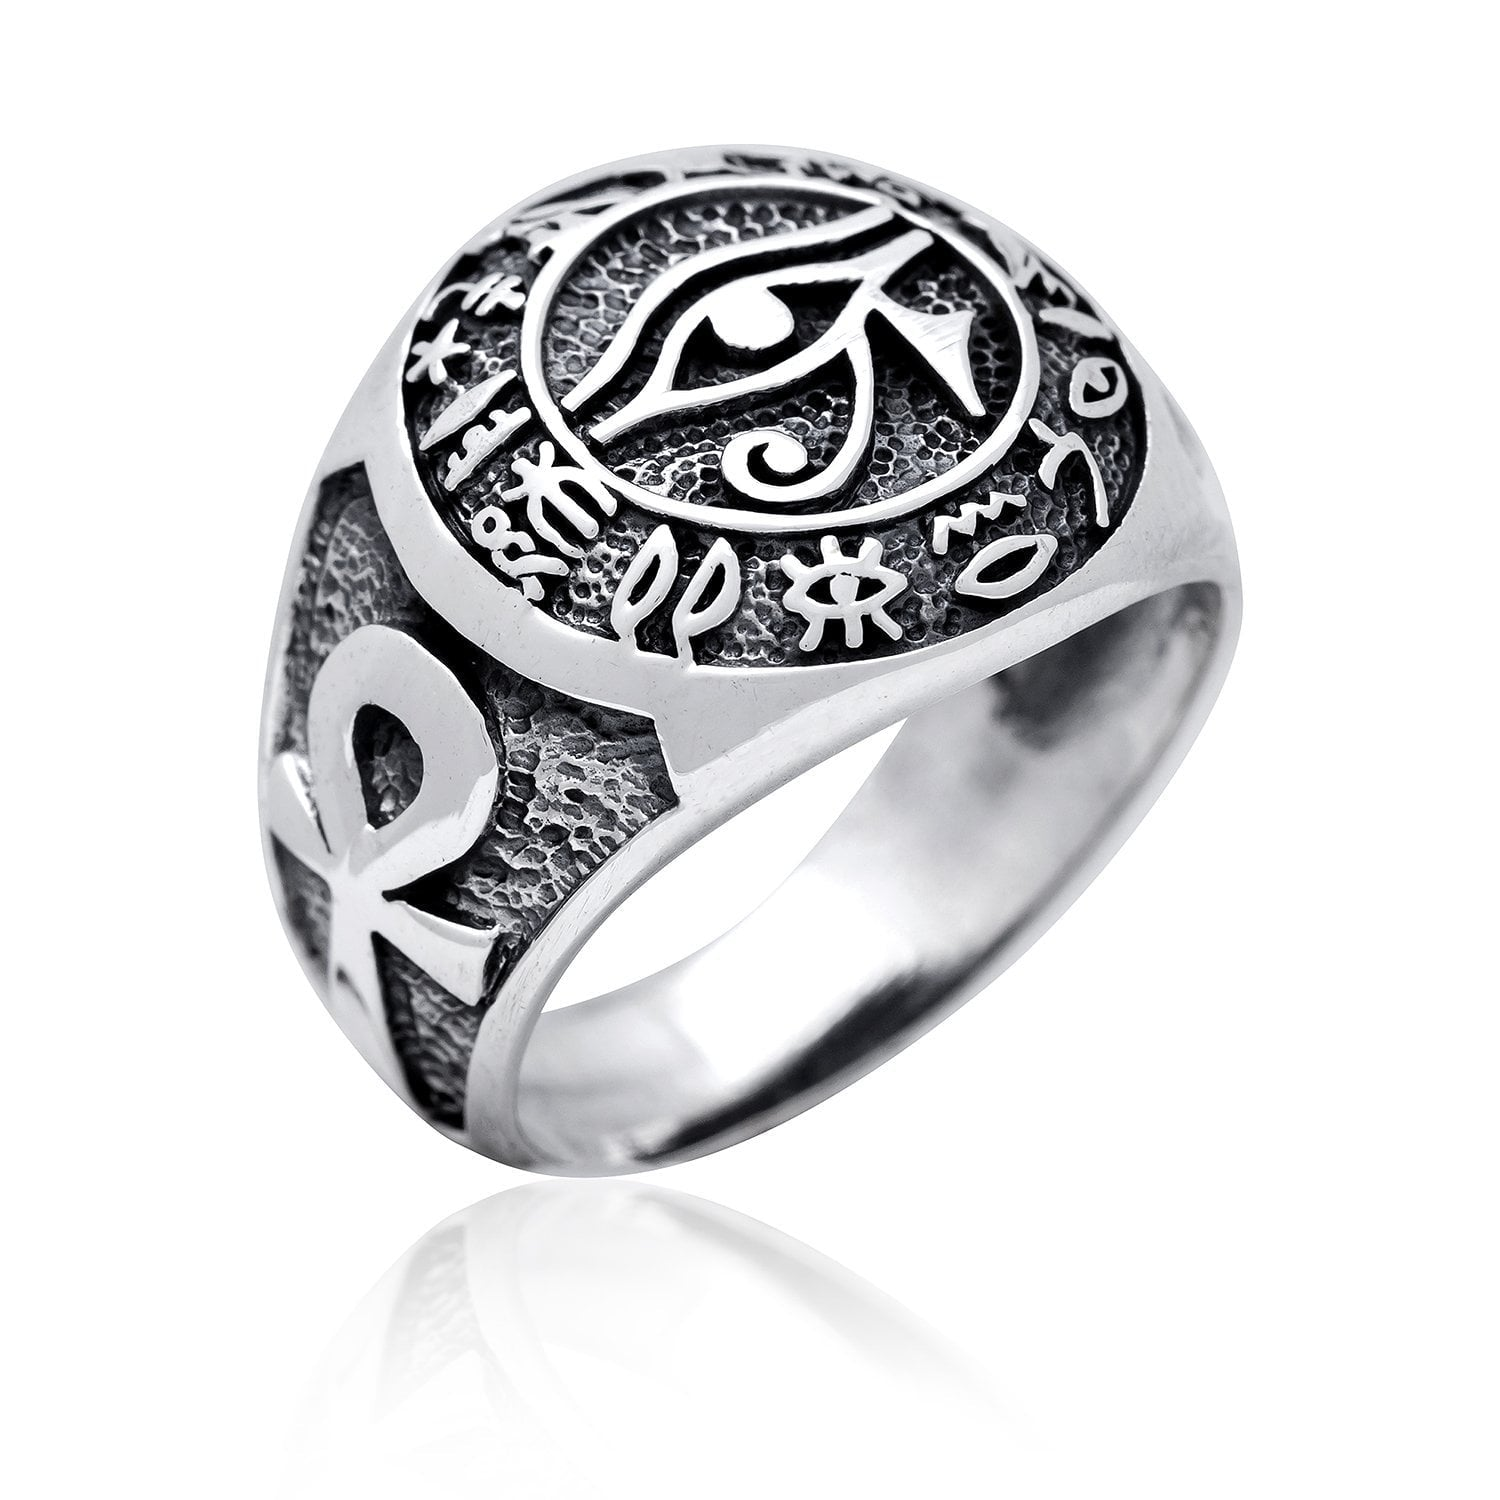 discounts s wedding ancient rings exquisite buy pretty women price and egyptian jewelry